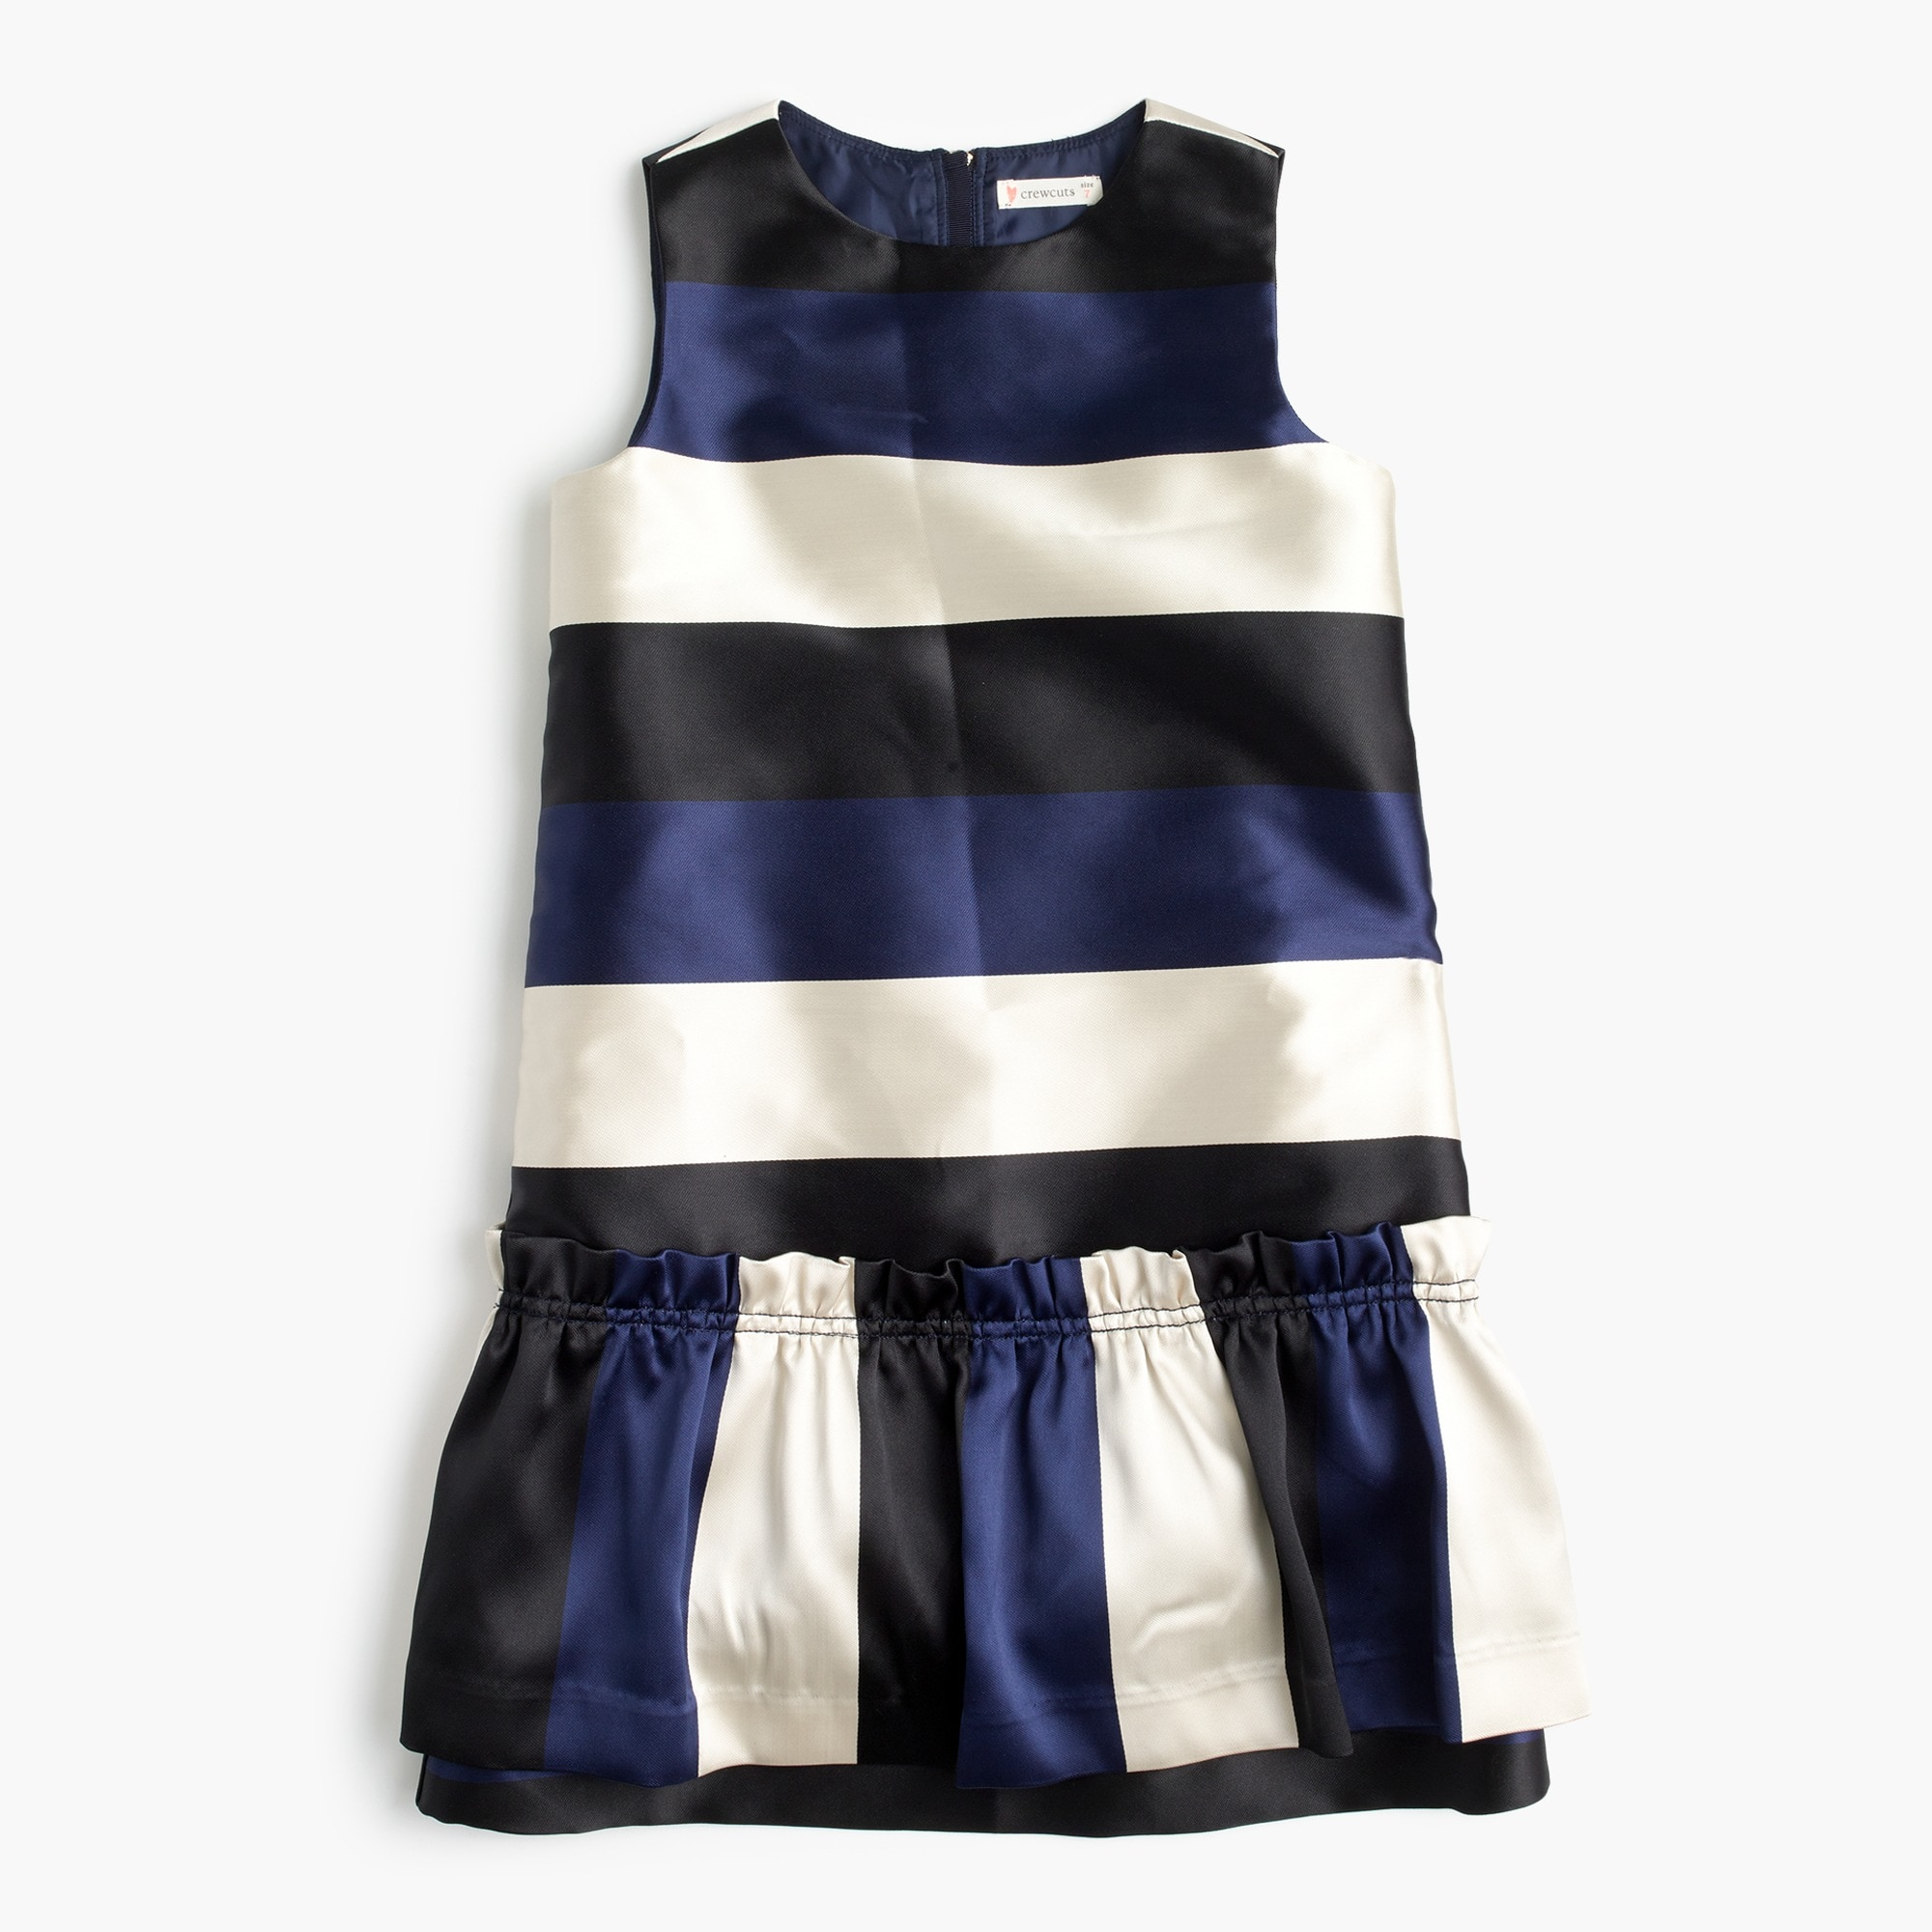 Image 1 for Girls' drop-waist dress in striped satin